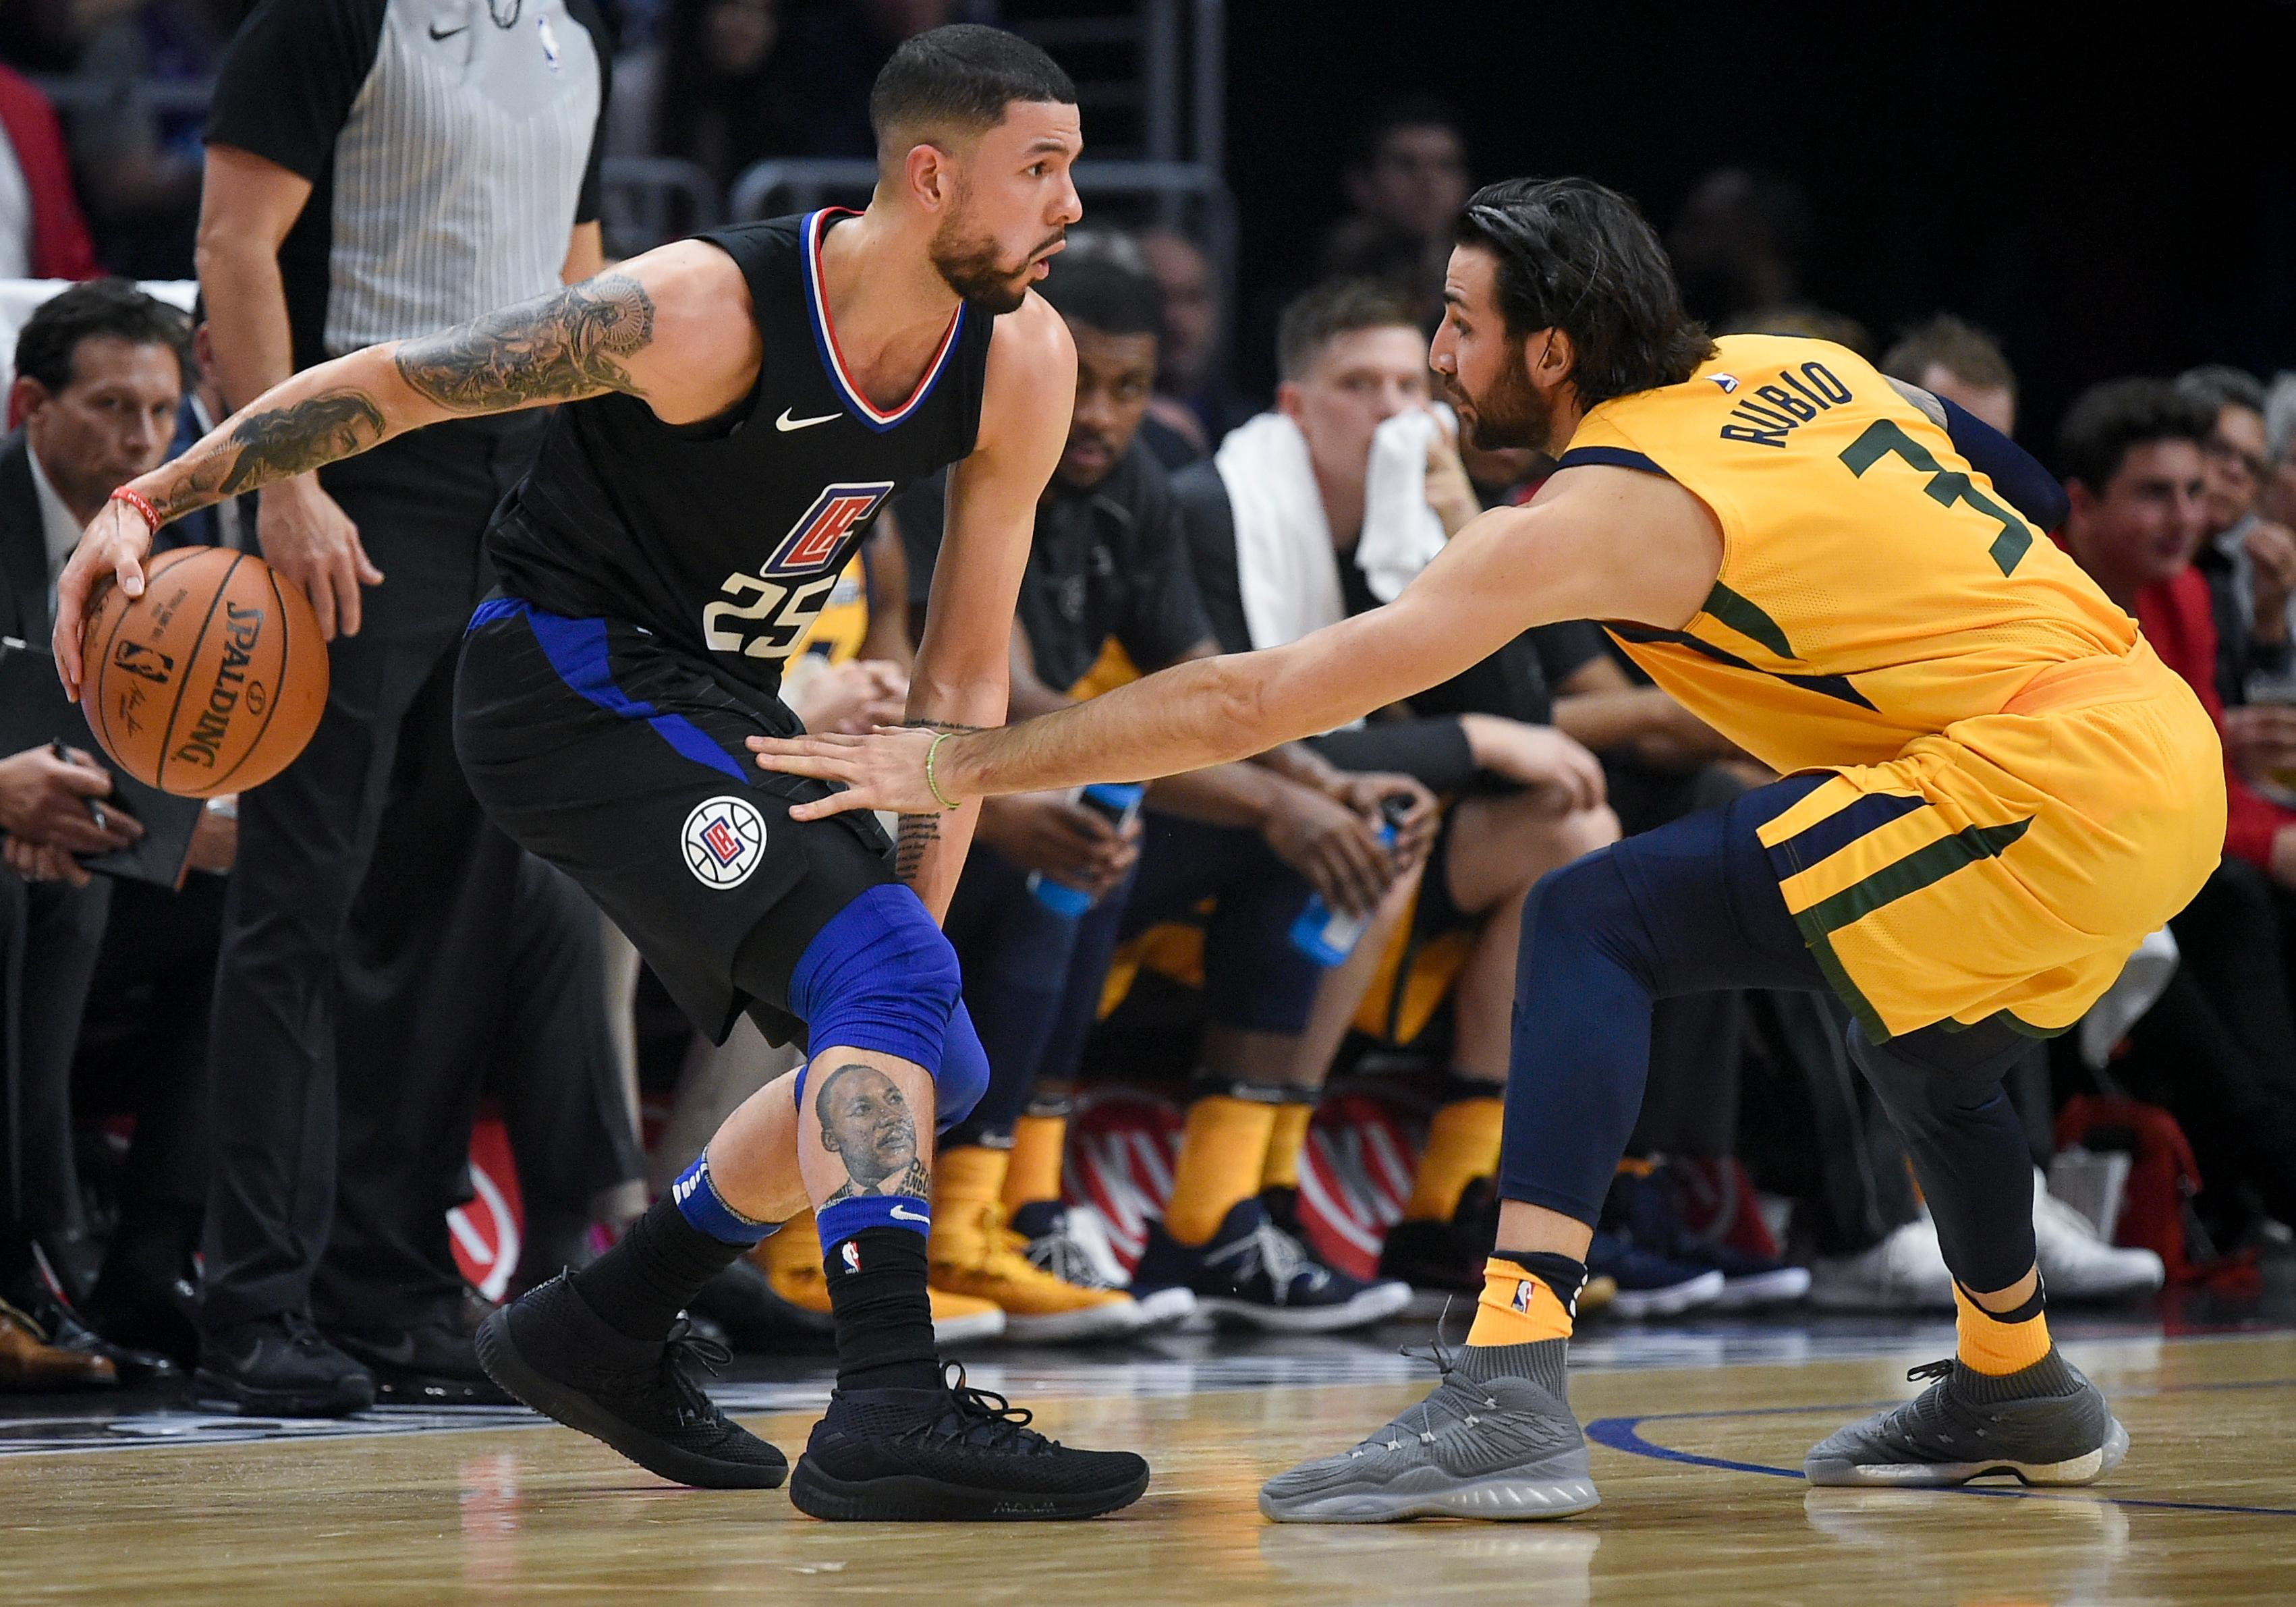 Los Angeles Clippers guard Austin Rivers, left, handles the ball as Utah Jazz guard Ricky Rubio defends during the first half of an NBA basketball game in Los Angeles, Thursday, Nov. 30, 2017. (AP Photo/Kelvin Kuo)